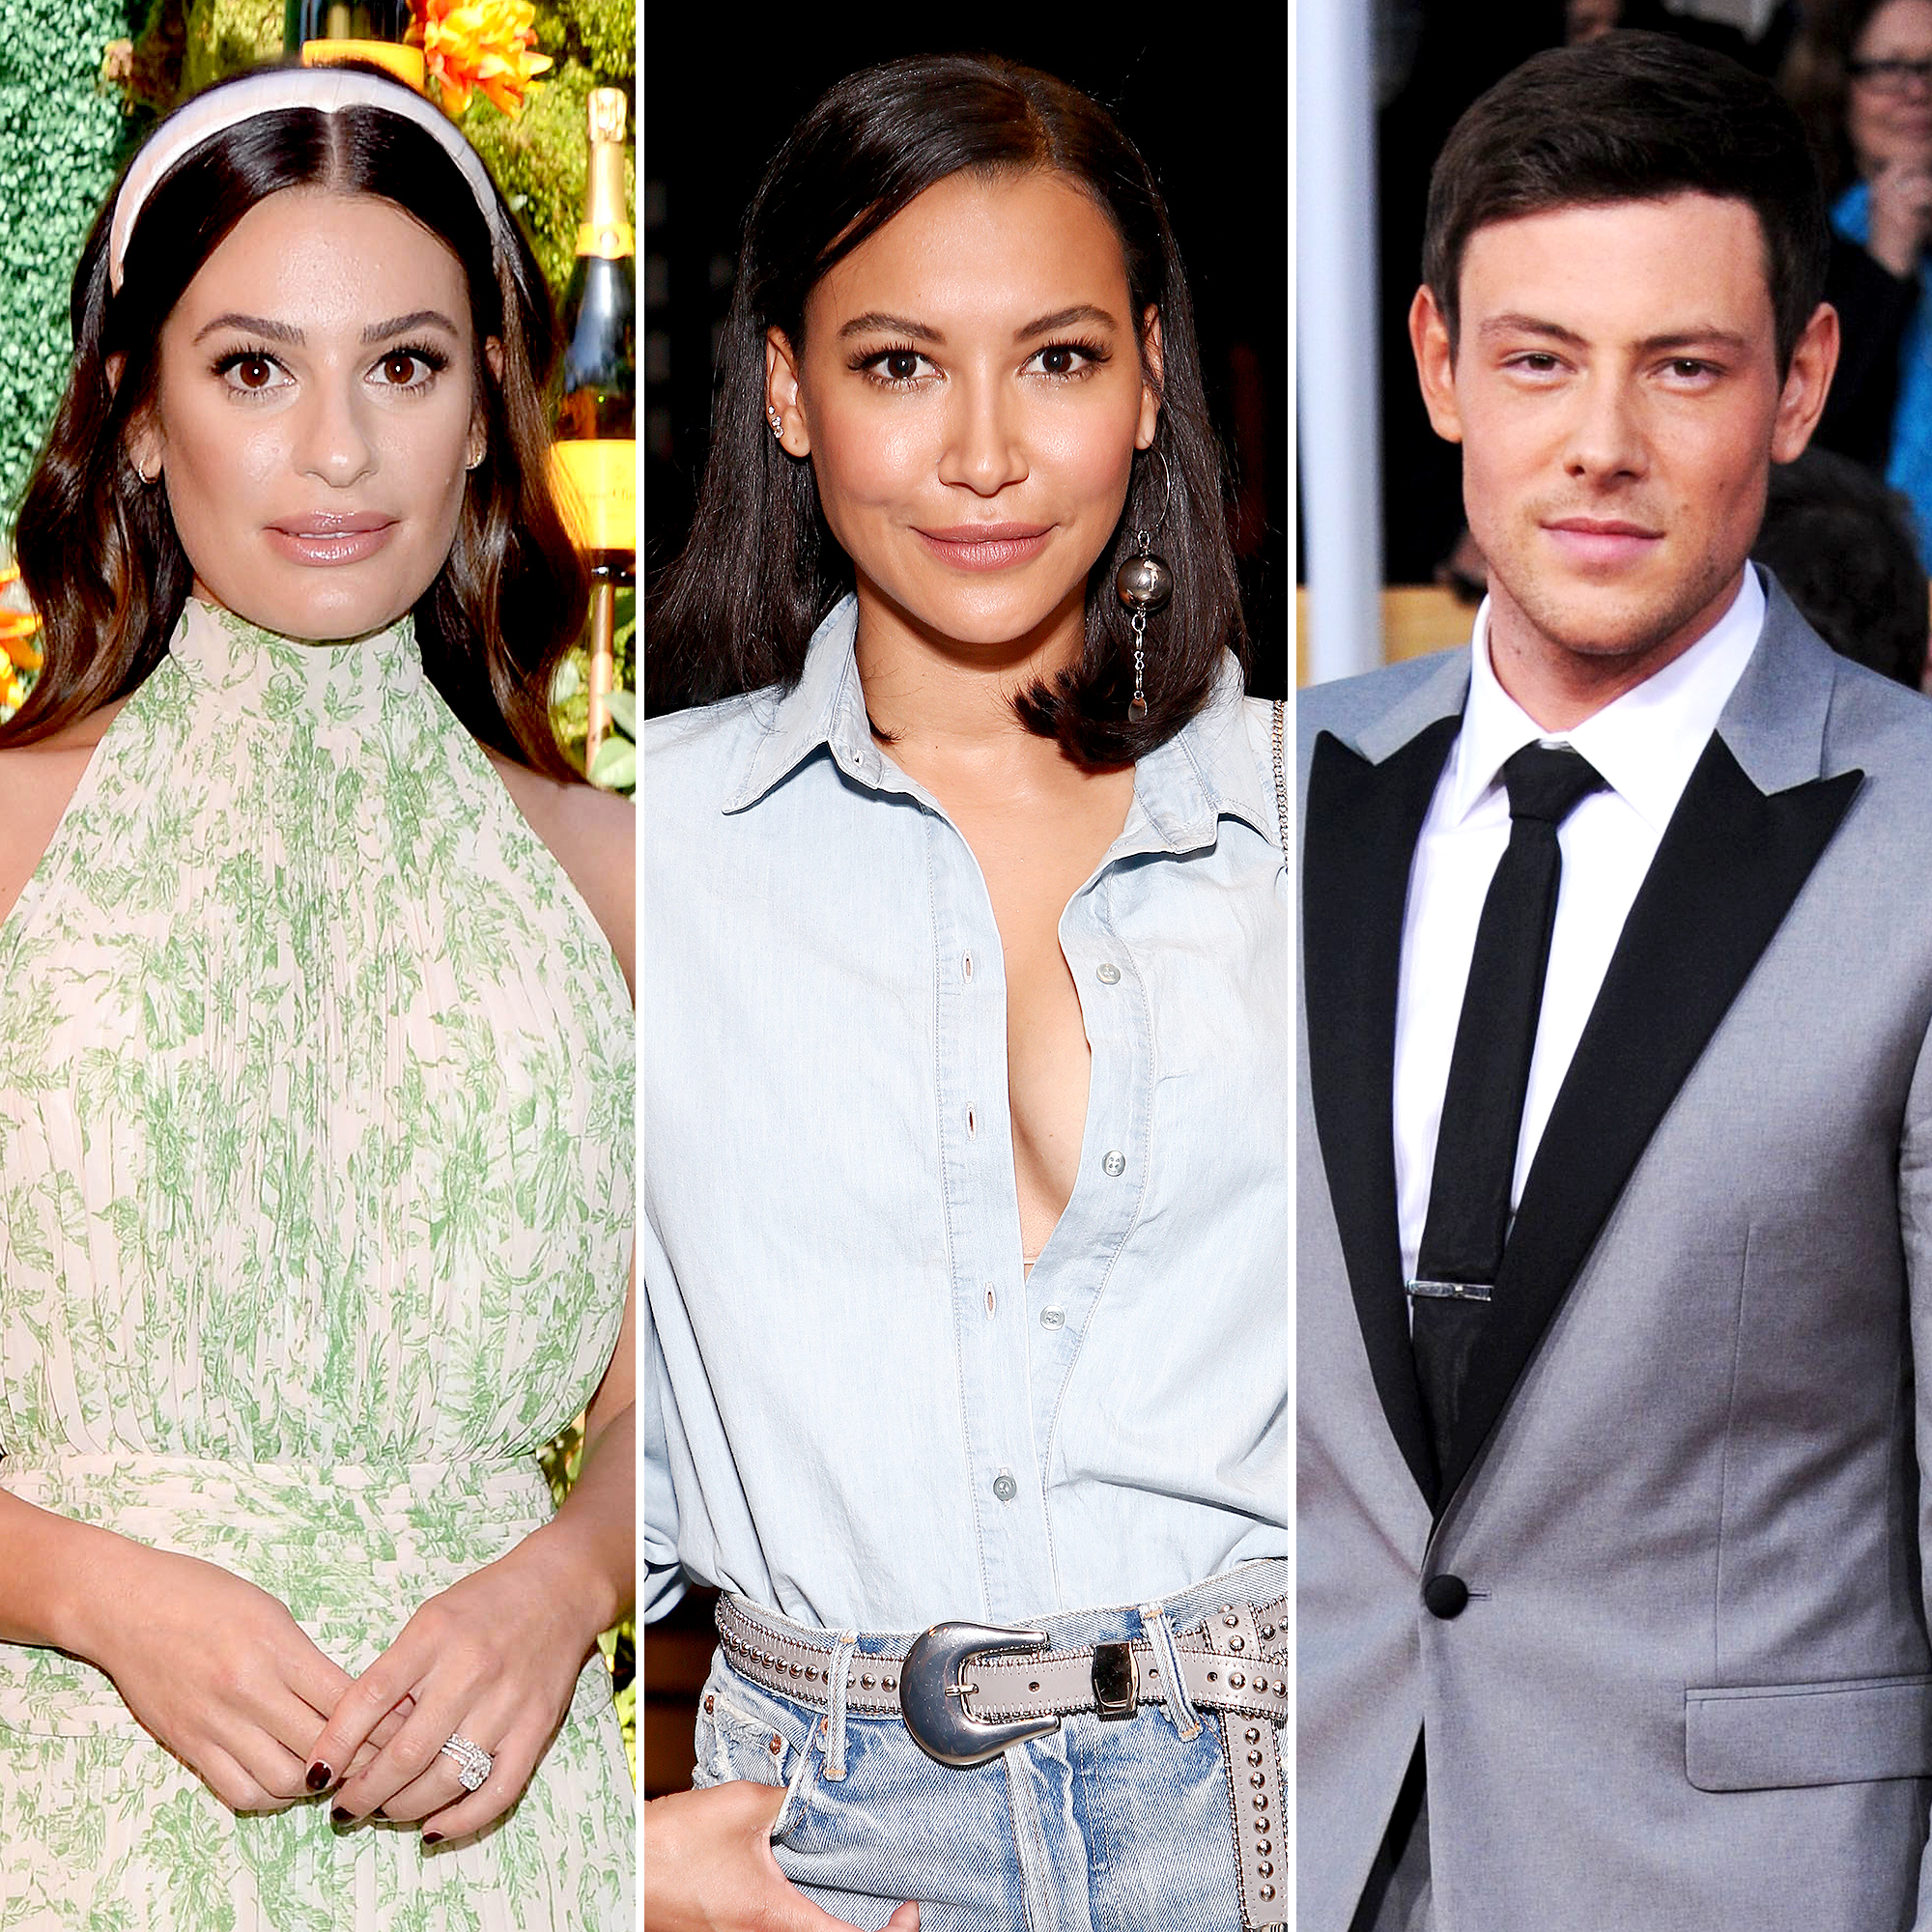 Lea Michele Mourns the Loss of Naya Rivera Cory Monteith